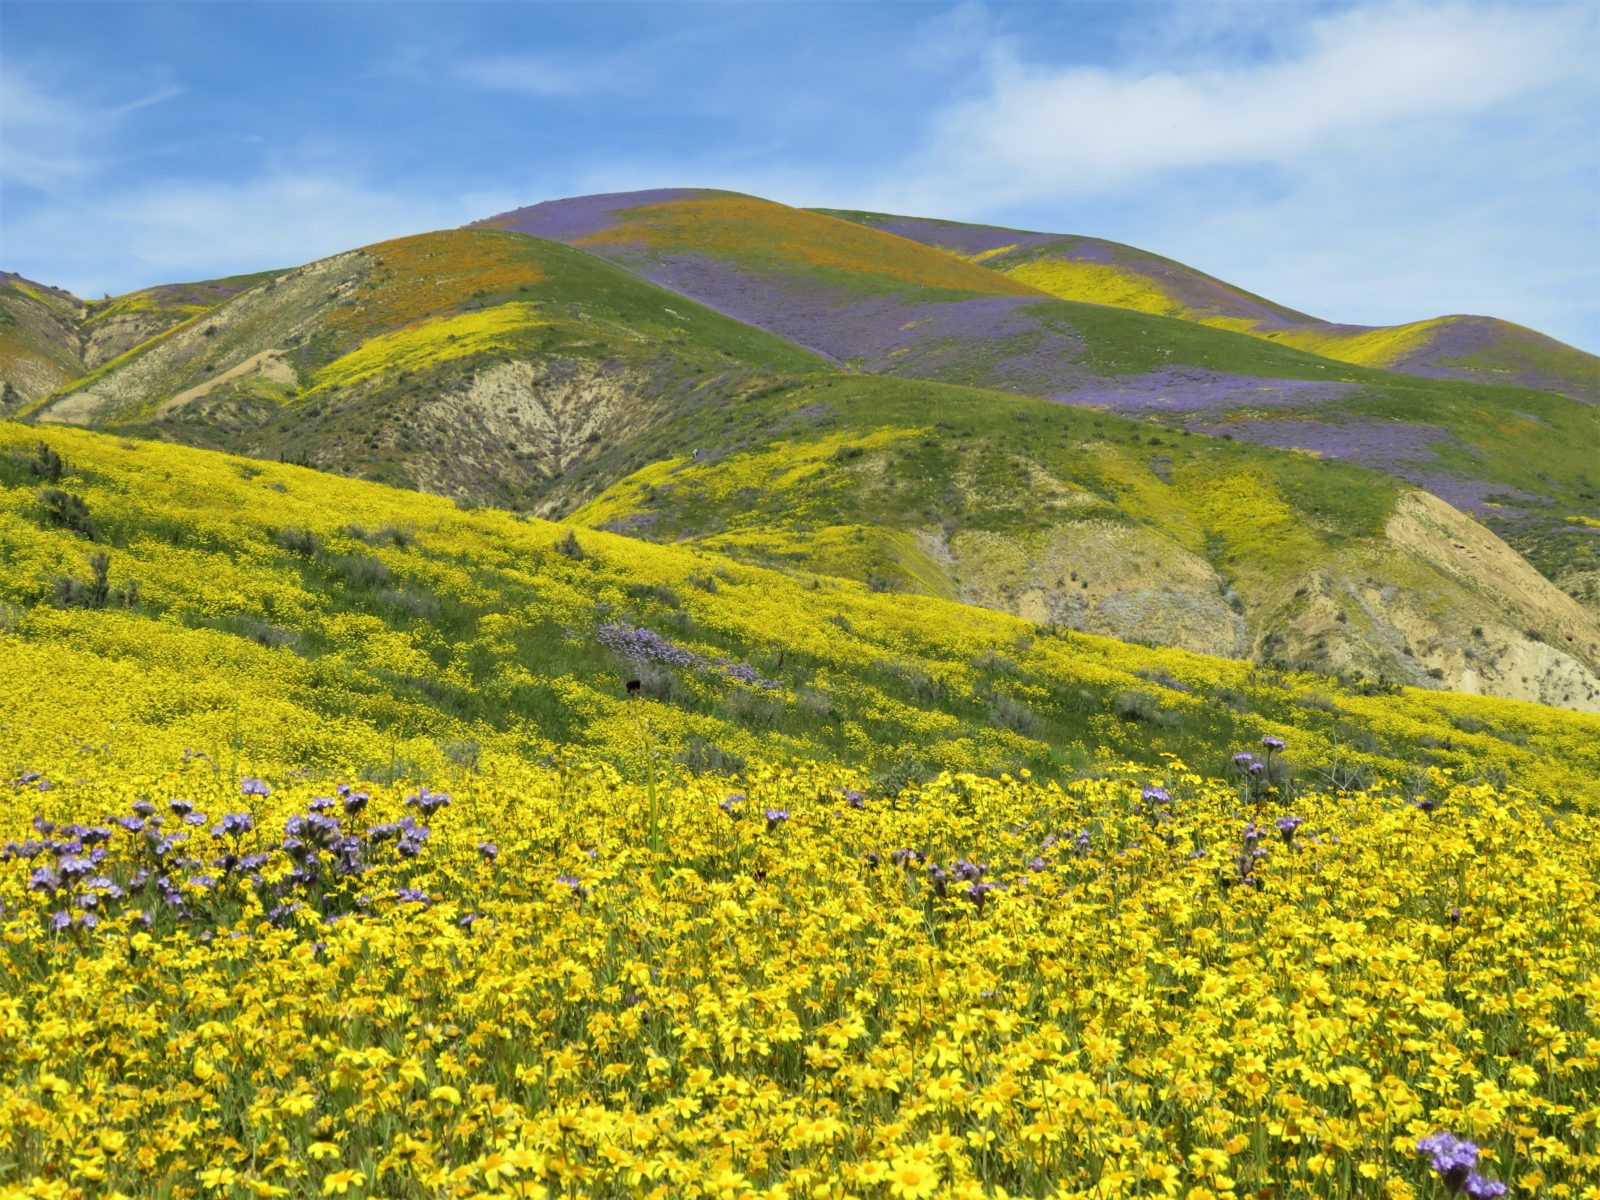 Temblor Range Carrizo Plain